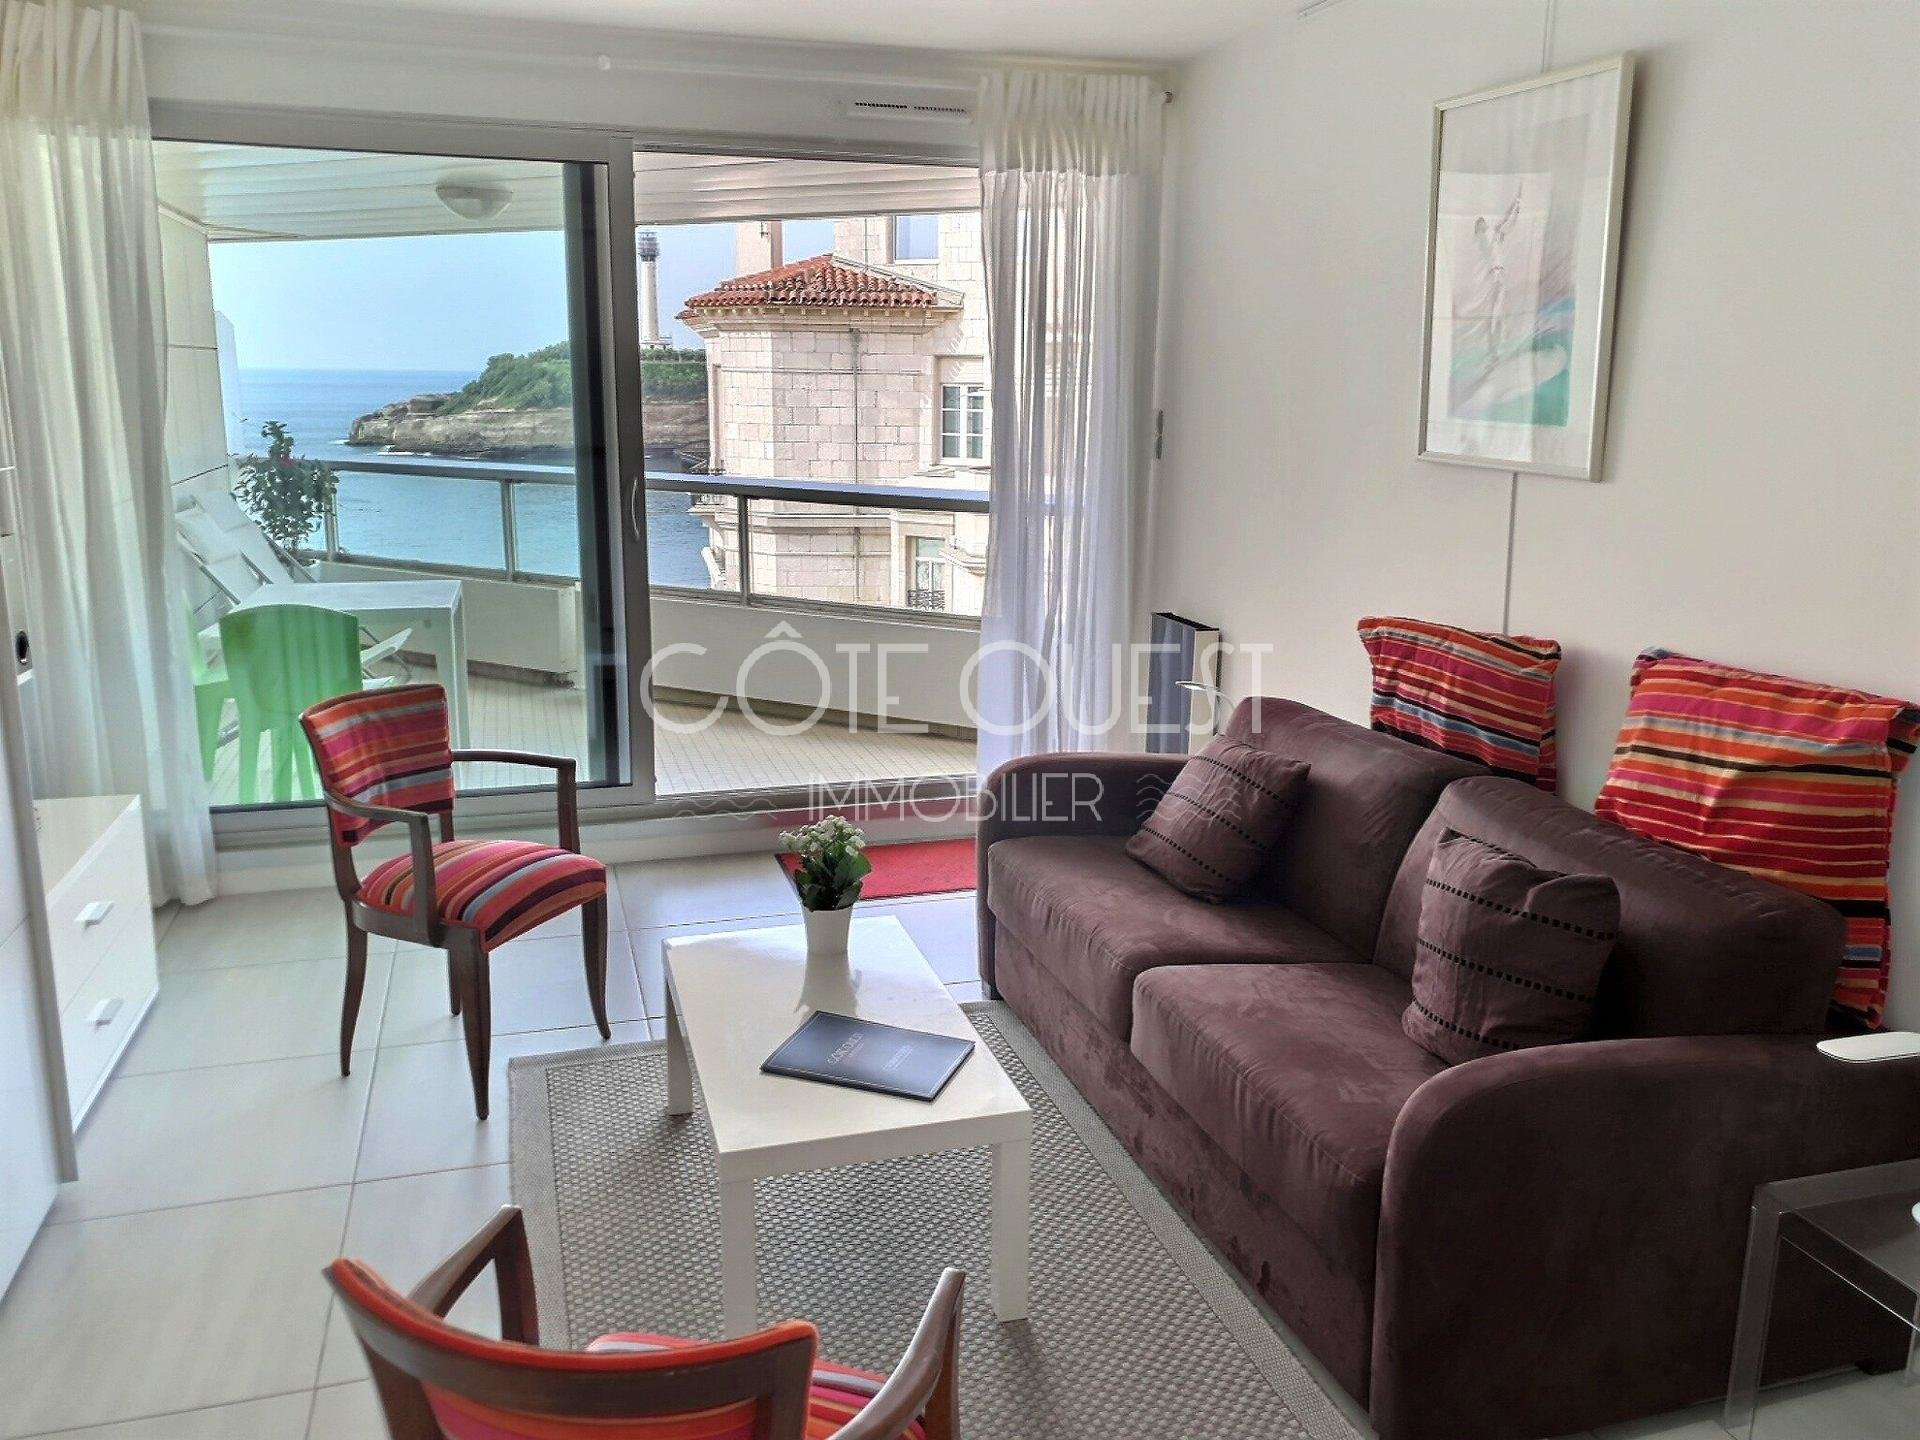 BIARRITZ – A STUDIO APARTMENT ENJOYING AN OCEAN VIEW